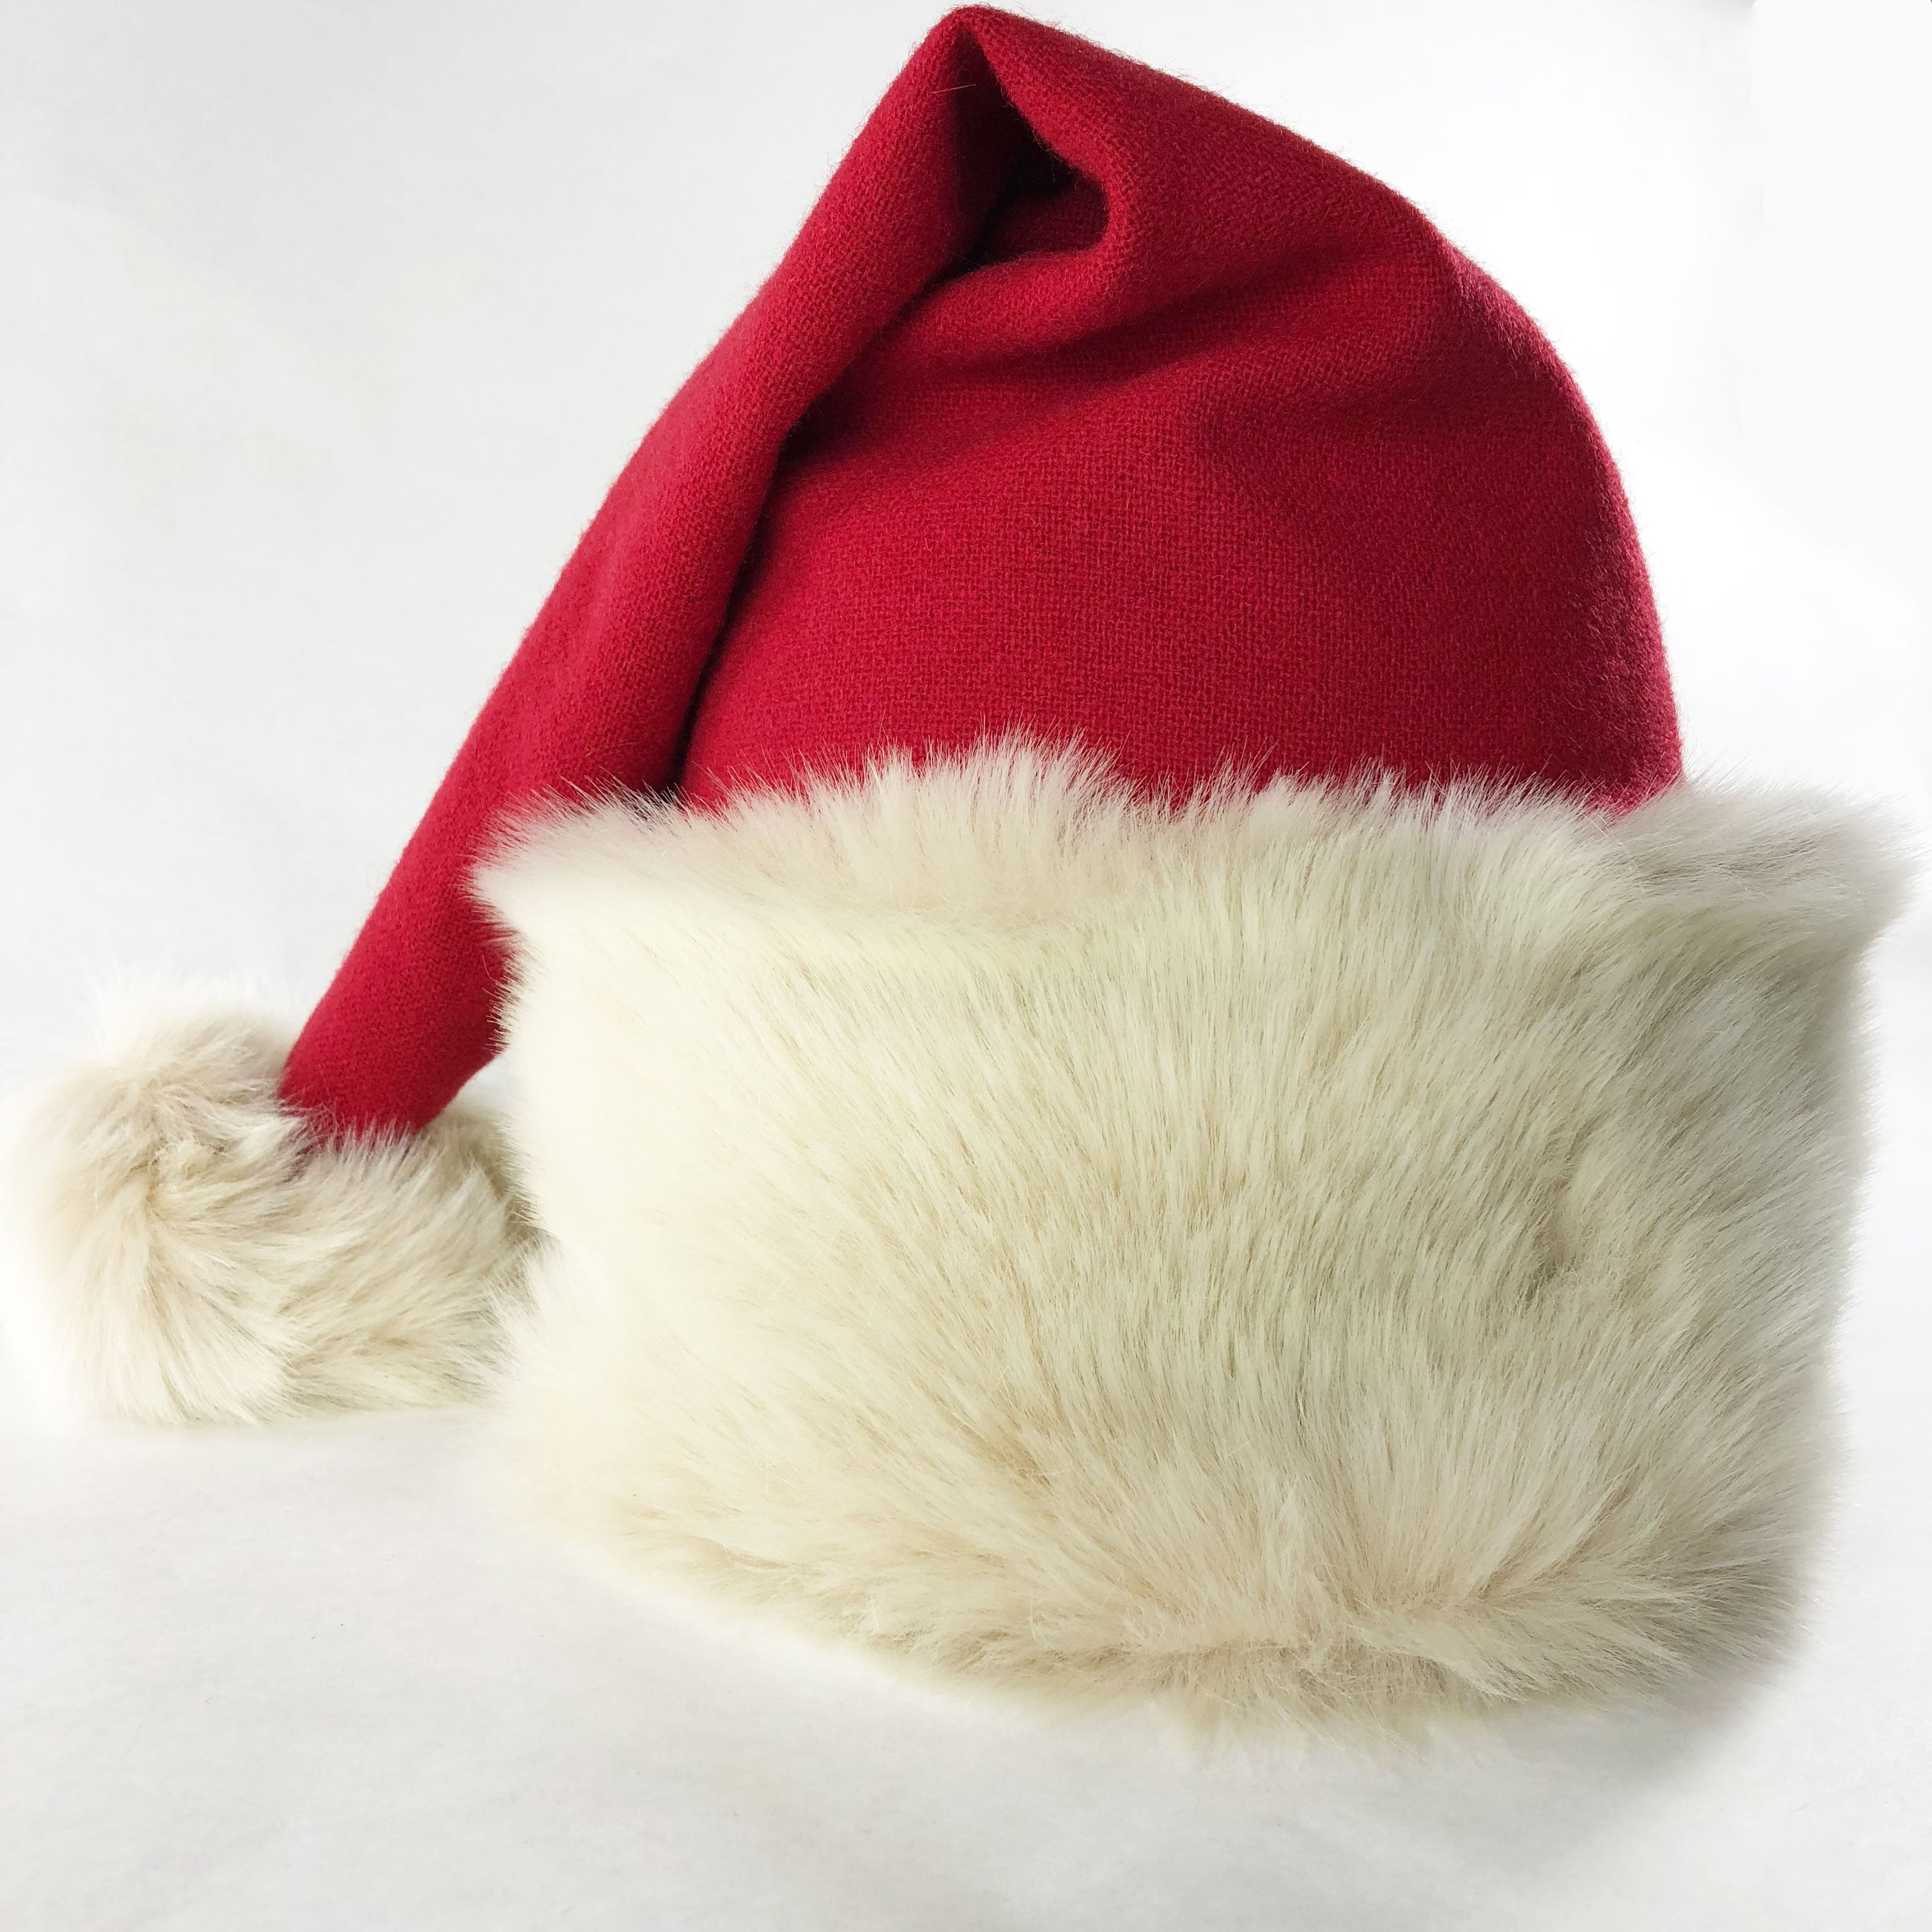 ed7bfa65c57ff ... Luxury Santa hat hand-crafted from with ivory faux fur and red merino  wool in ...